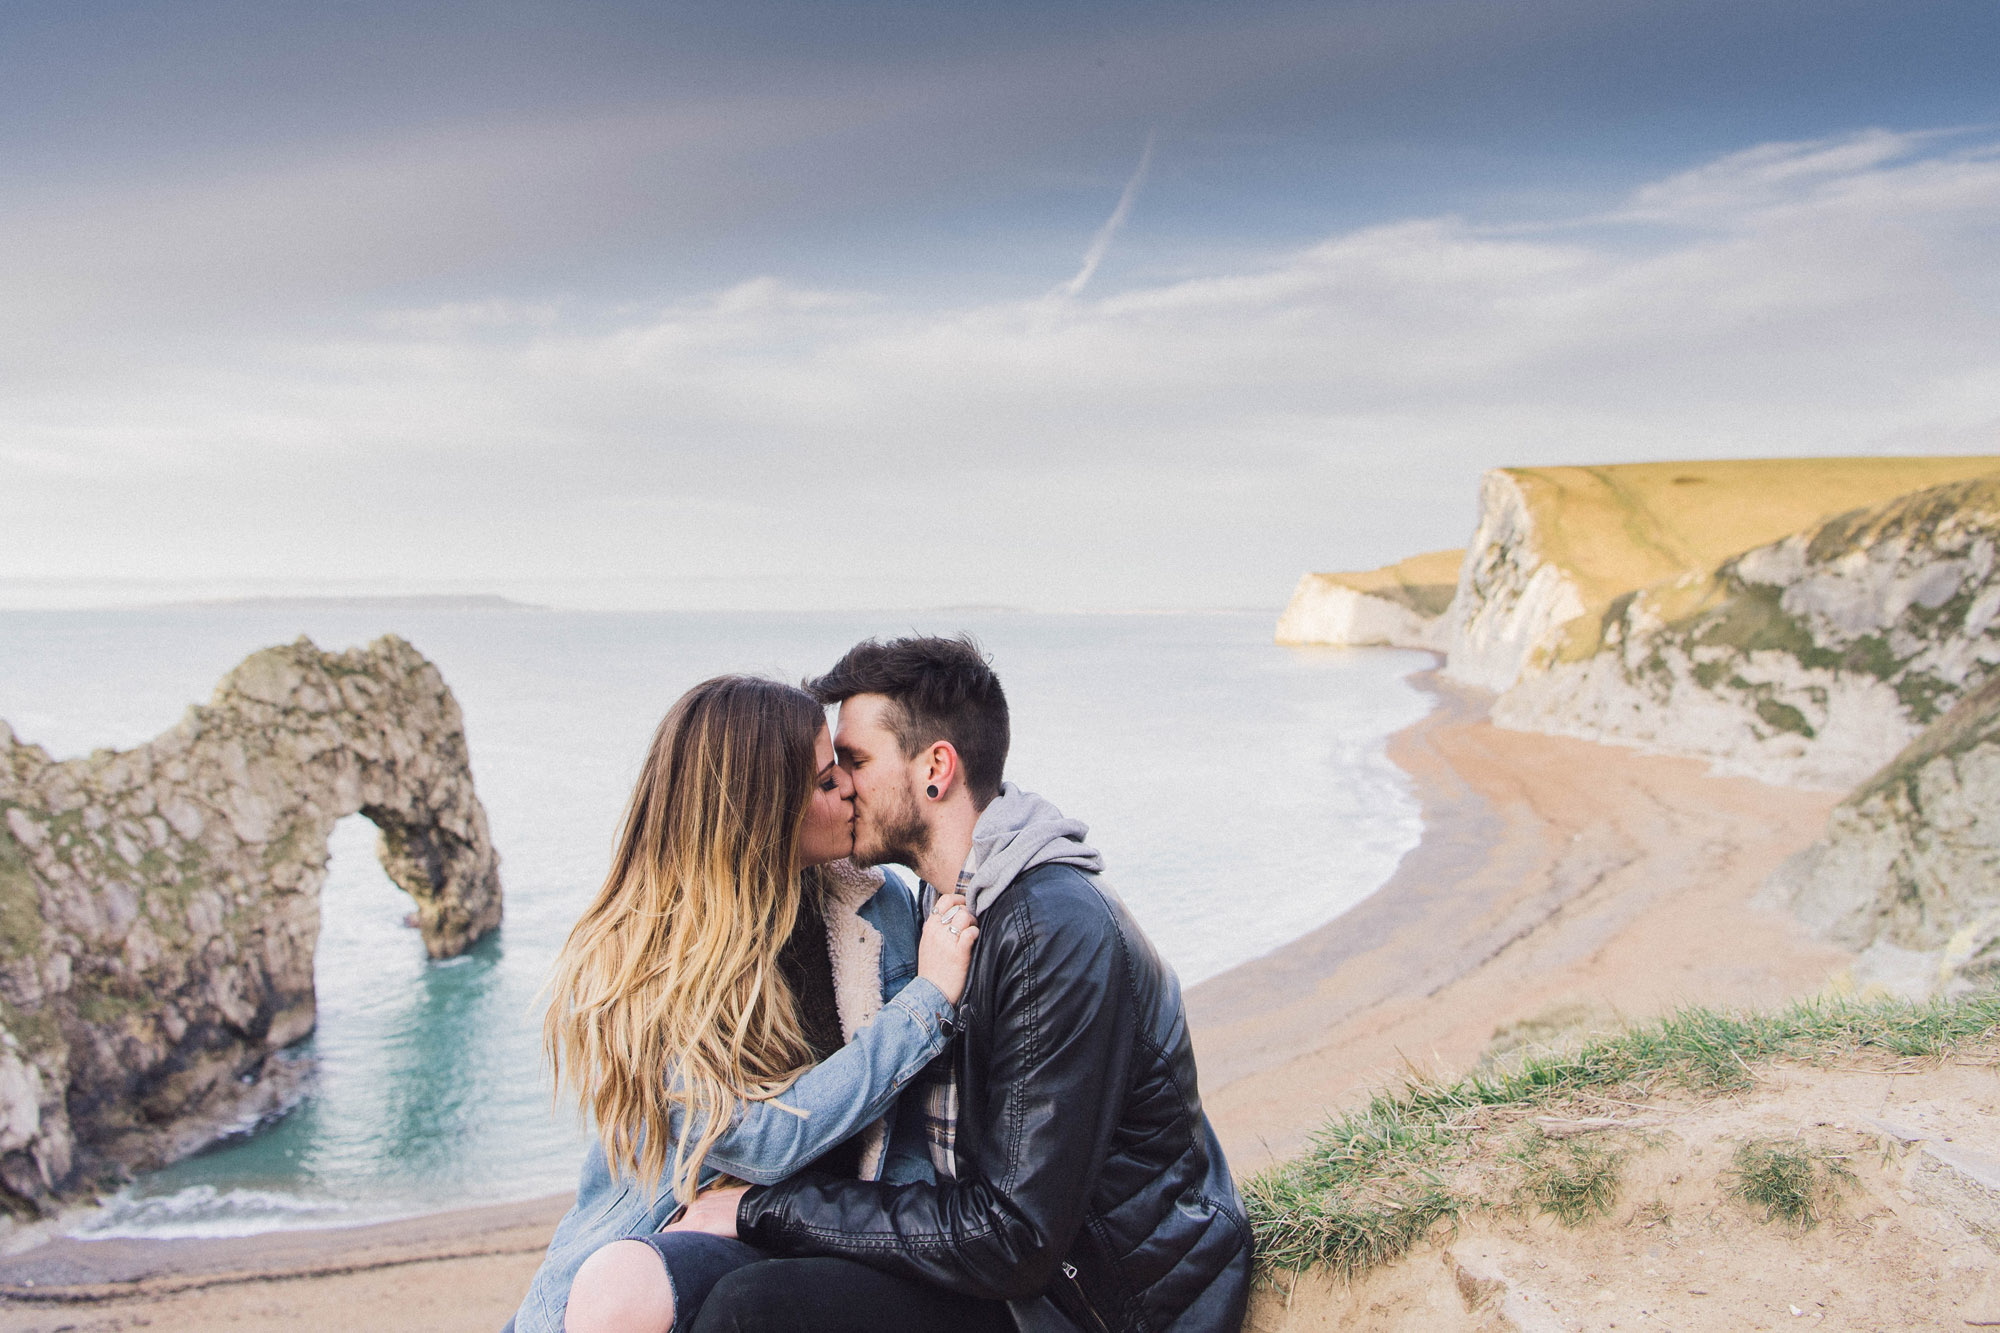 A Spring sunrise pre-wedding shoot in Dorset - Lucy and Ali